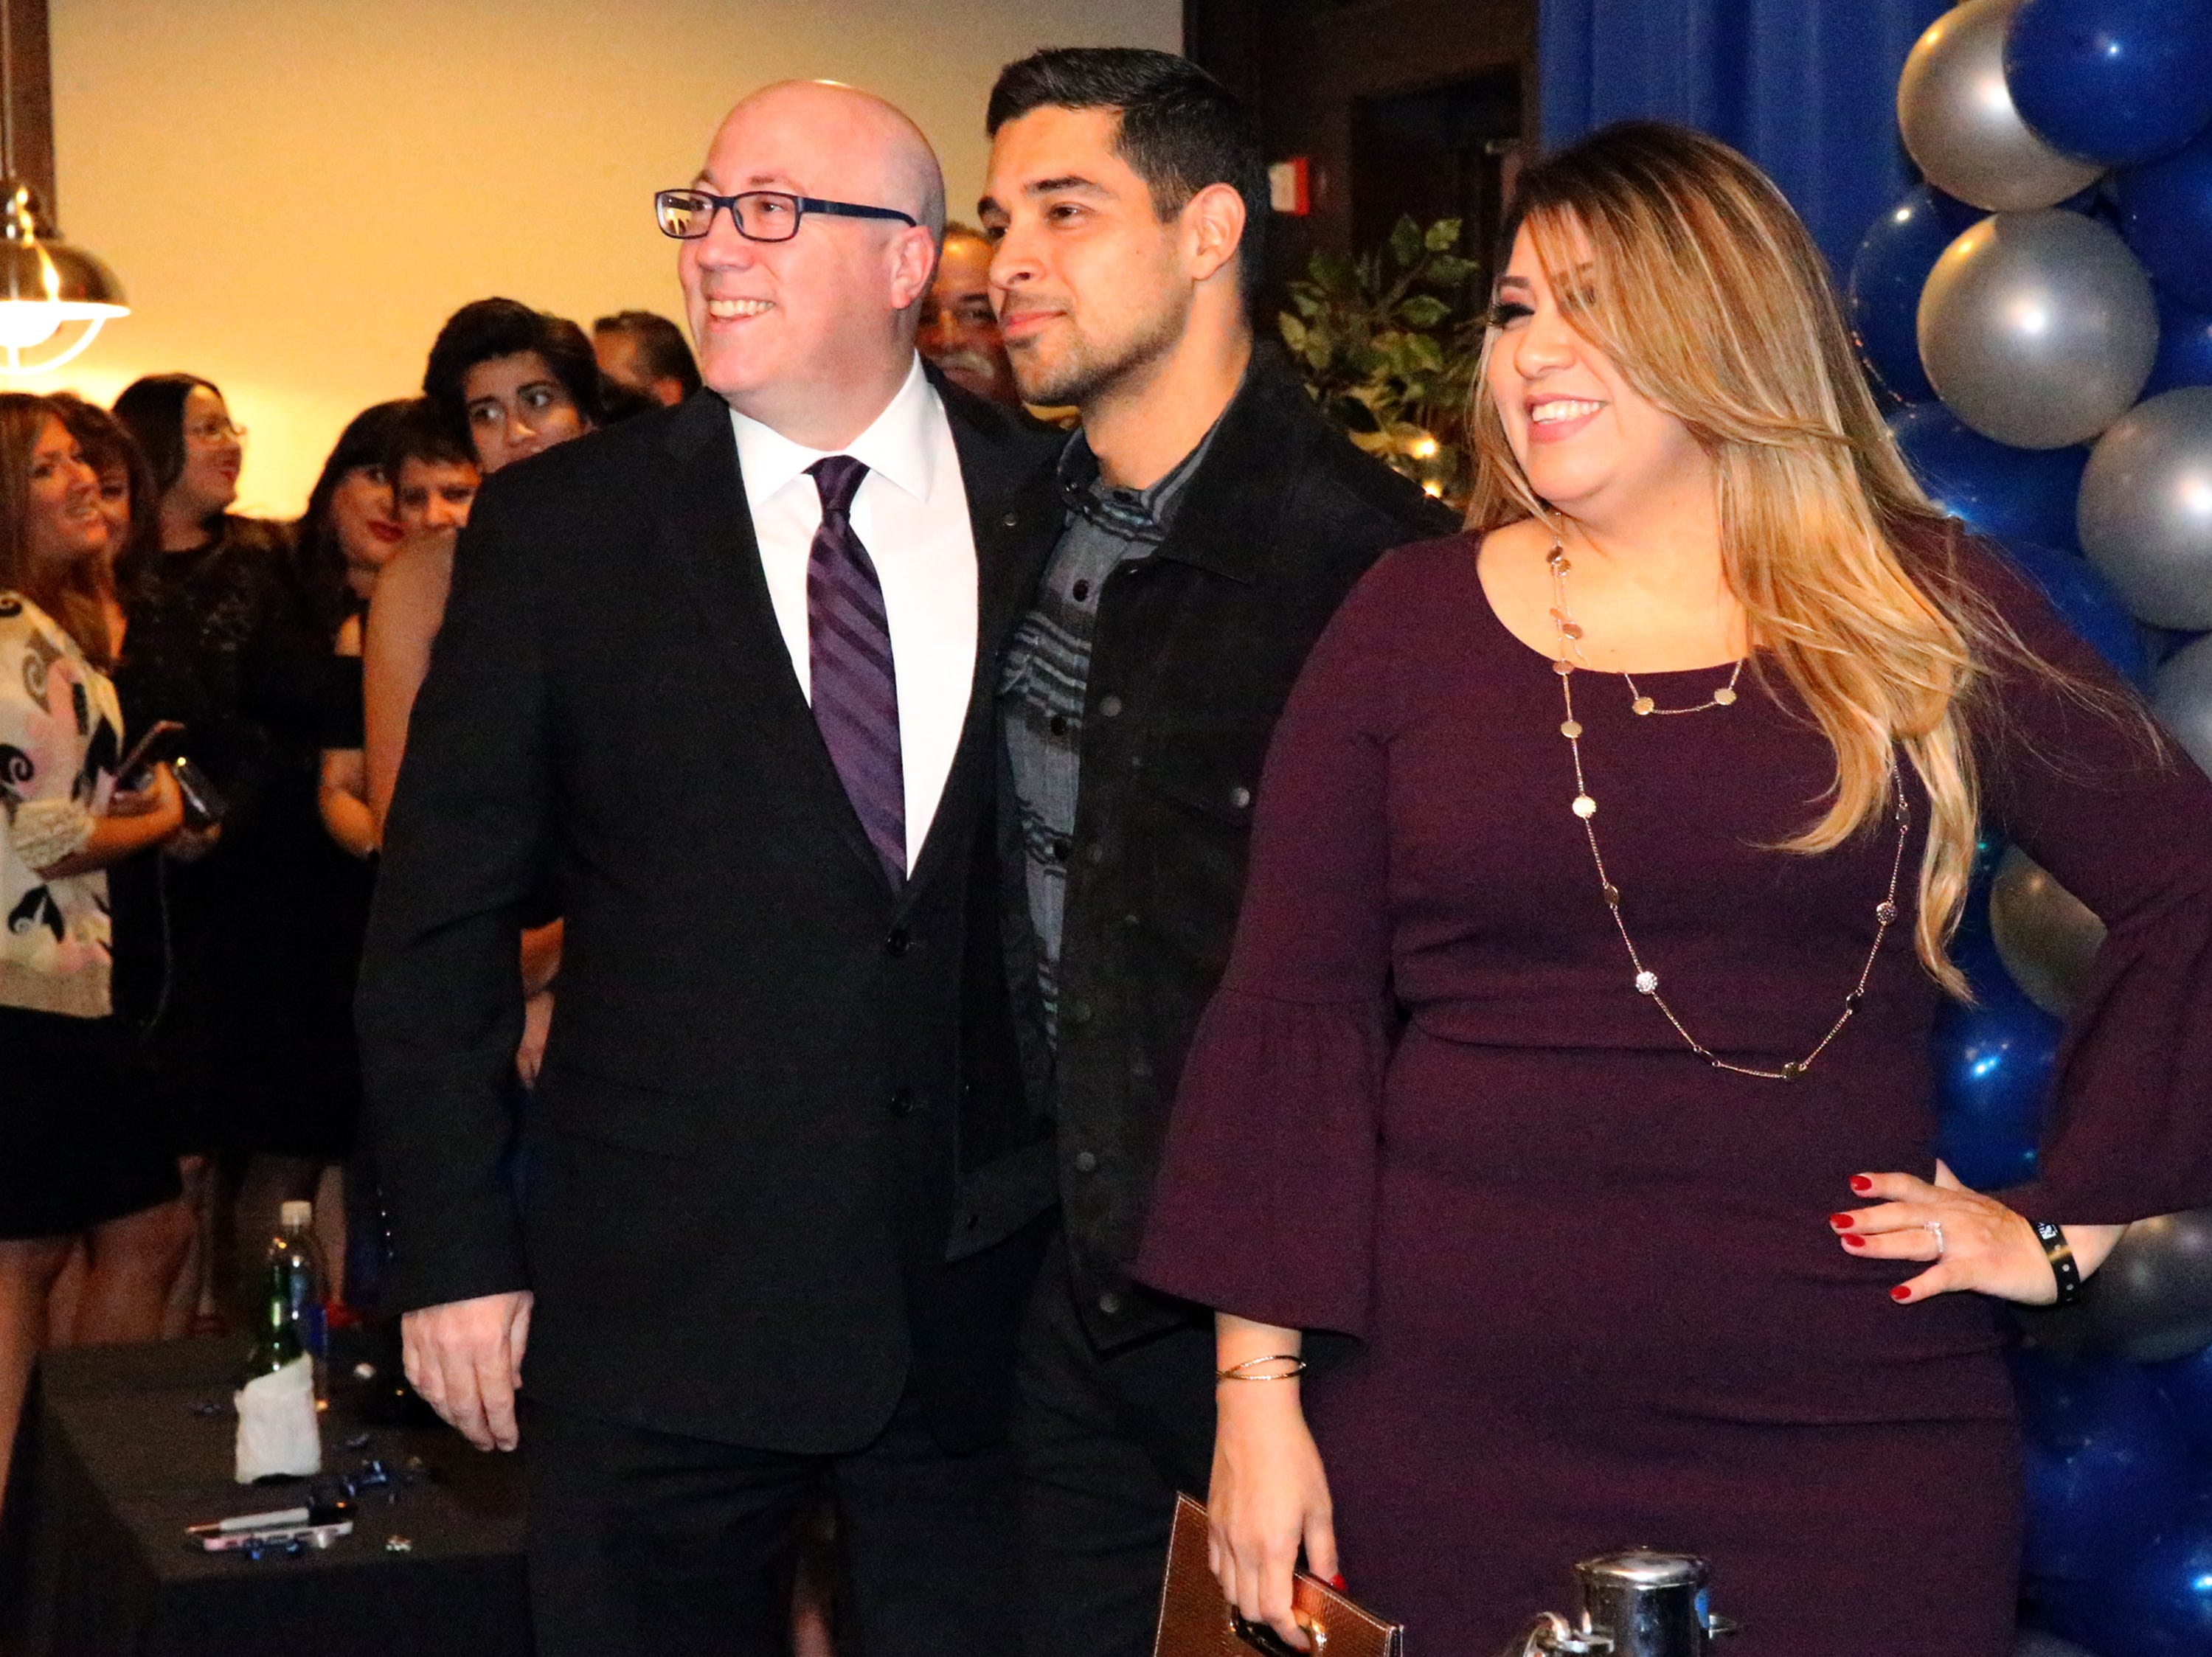 Actor/producer Wilmer Valderrama, center, poses for a picture with Jim and Isela Perricone during a private reception at the 28th El Paso Hispanic Chamber of Commerce annual Fiesta Celebration Saturday night at the Centennial Club at Fort Bliss. Valderrama was the featured guest at the event.